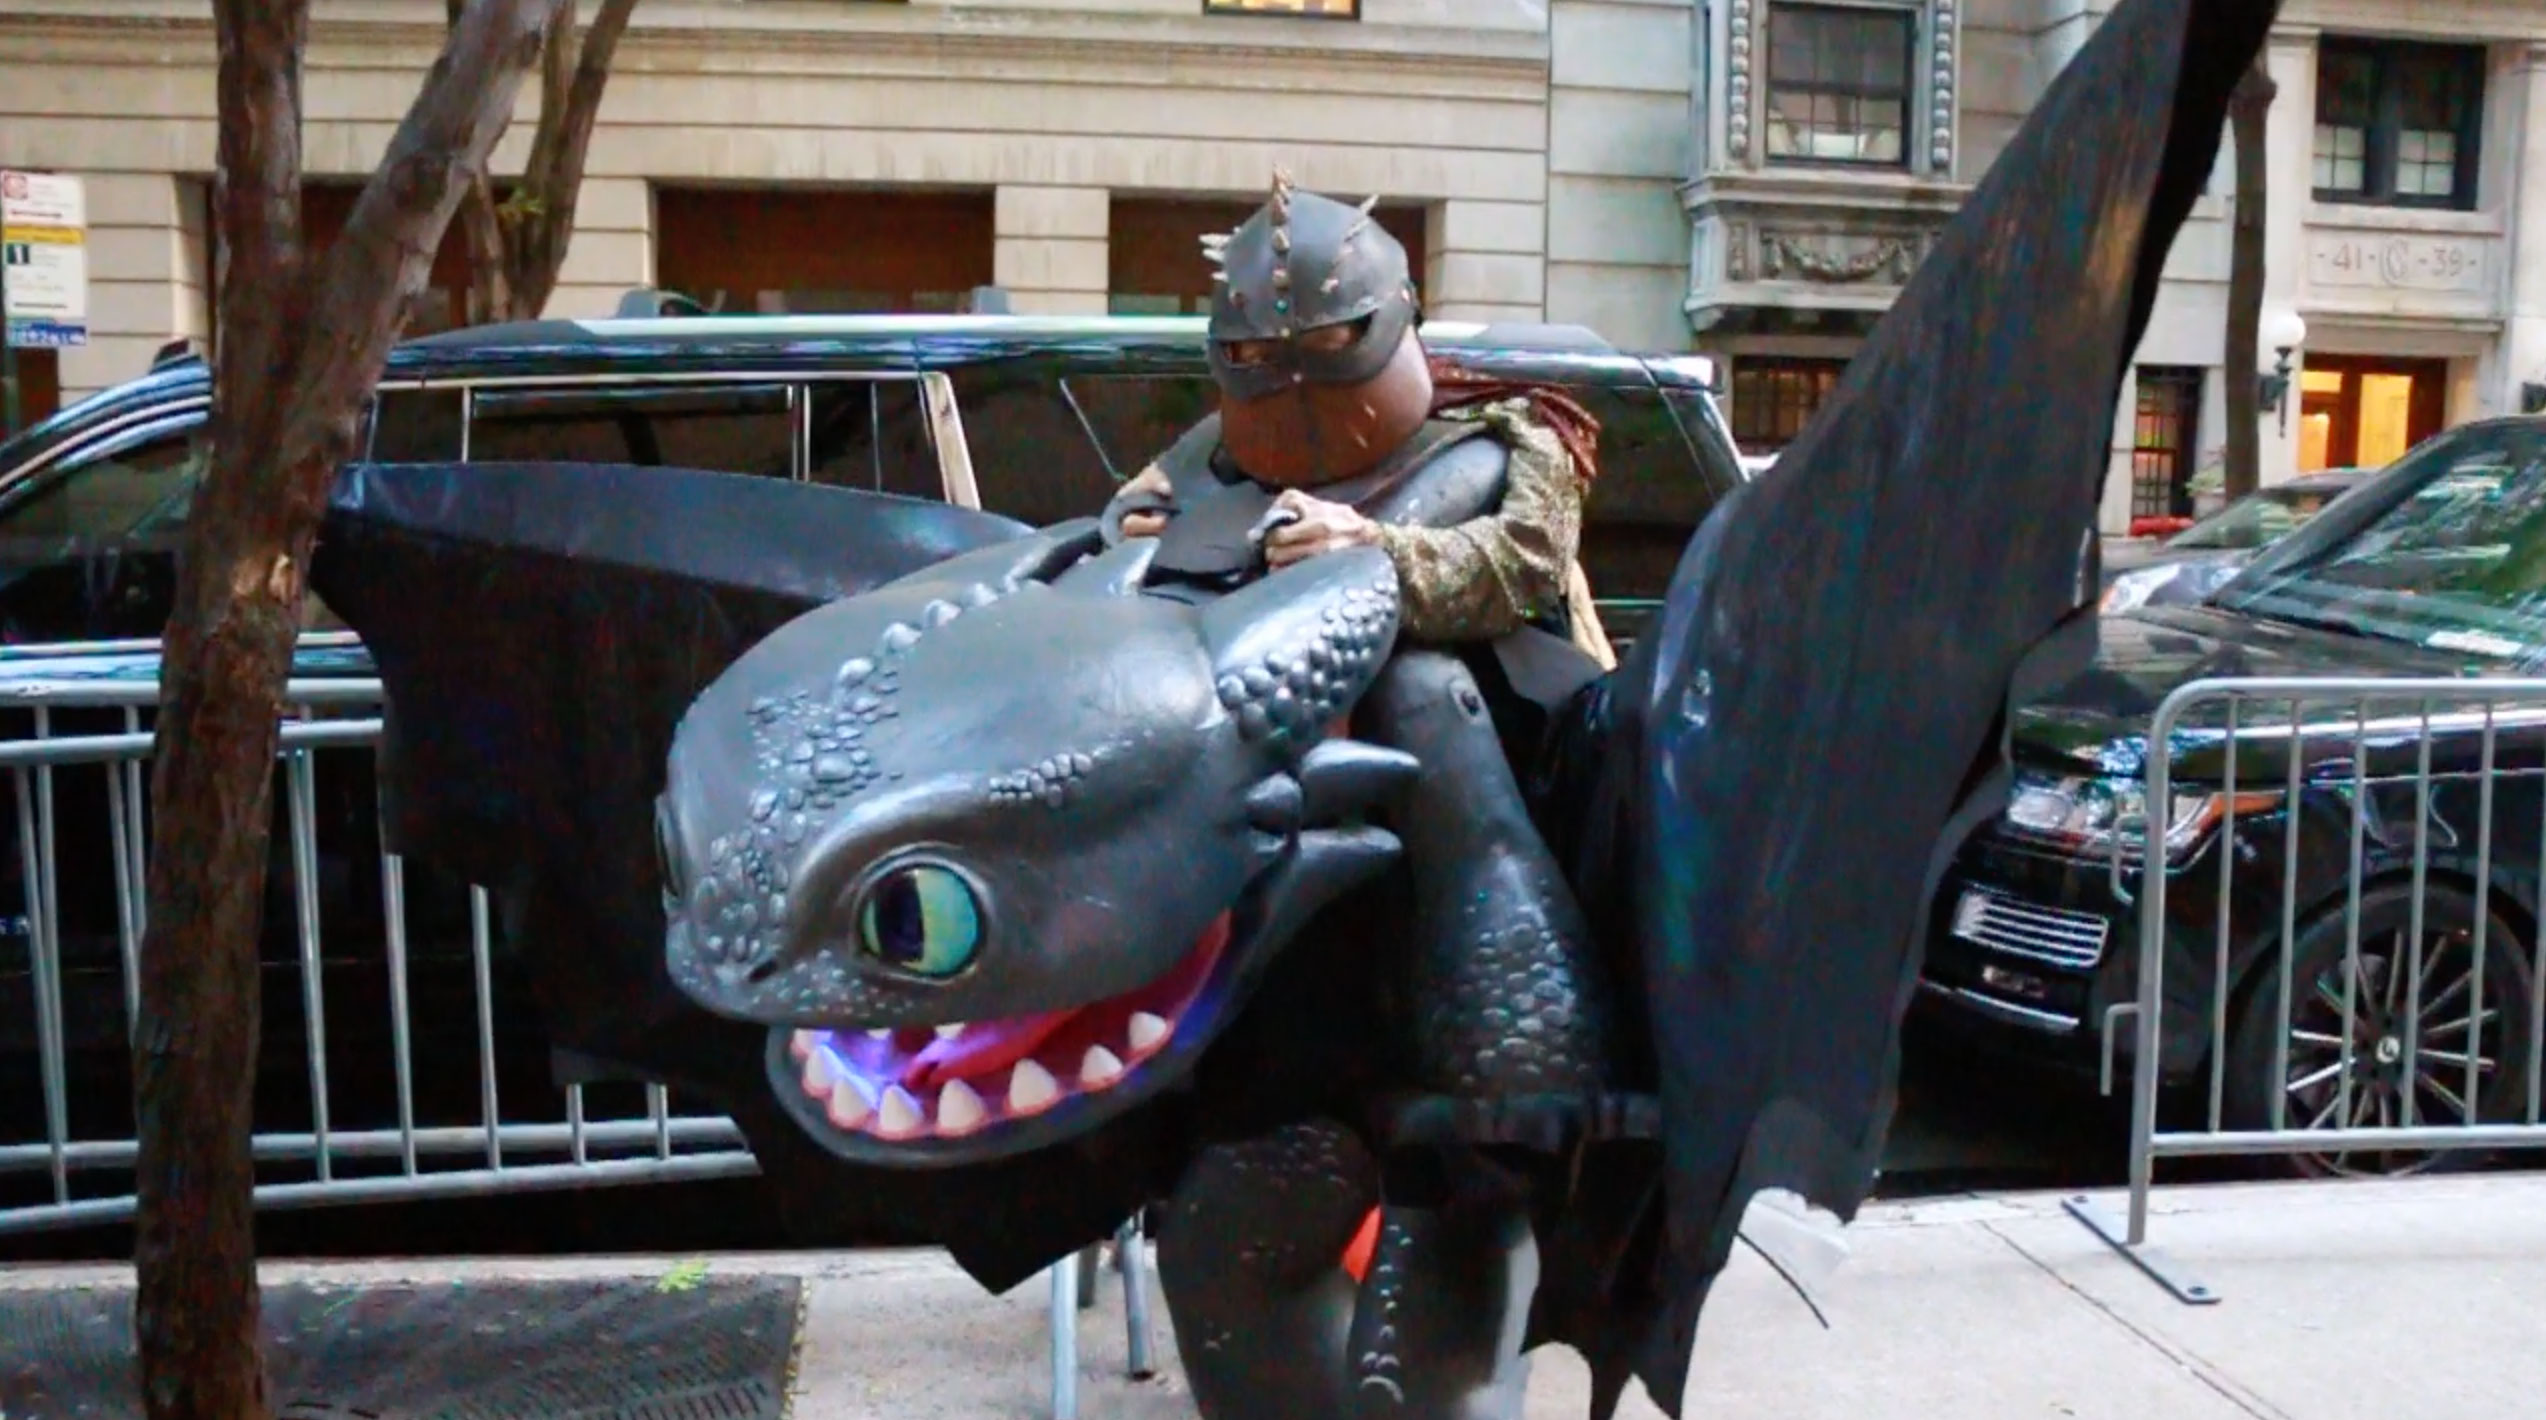 <div class='meta'><div class='origin-logo' data-origin='none'></div><span class='caption-text' data-credit=''>One of the finalists was Toothless from ''How to Train Your Dragon.''</span></div>